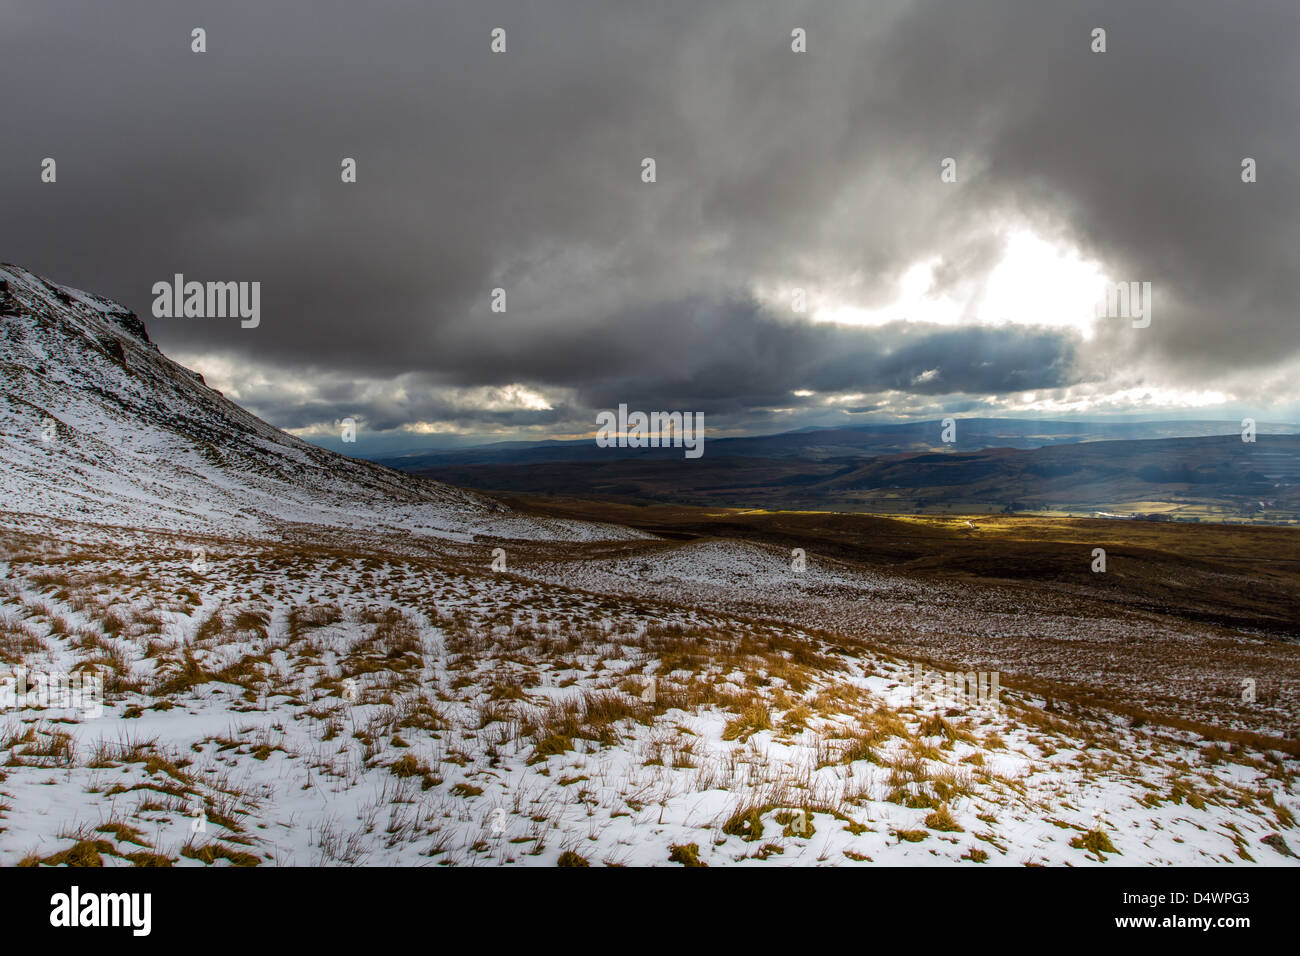 Heading up Pen-y-Ghent, one of the Yorkshire 3 Peaks and looking over to the Ribblesdale Valley, UK - Stock Image